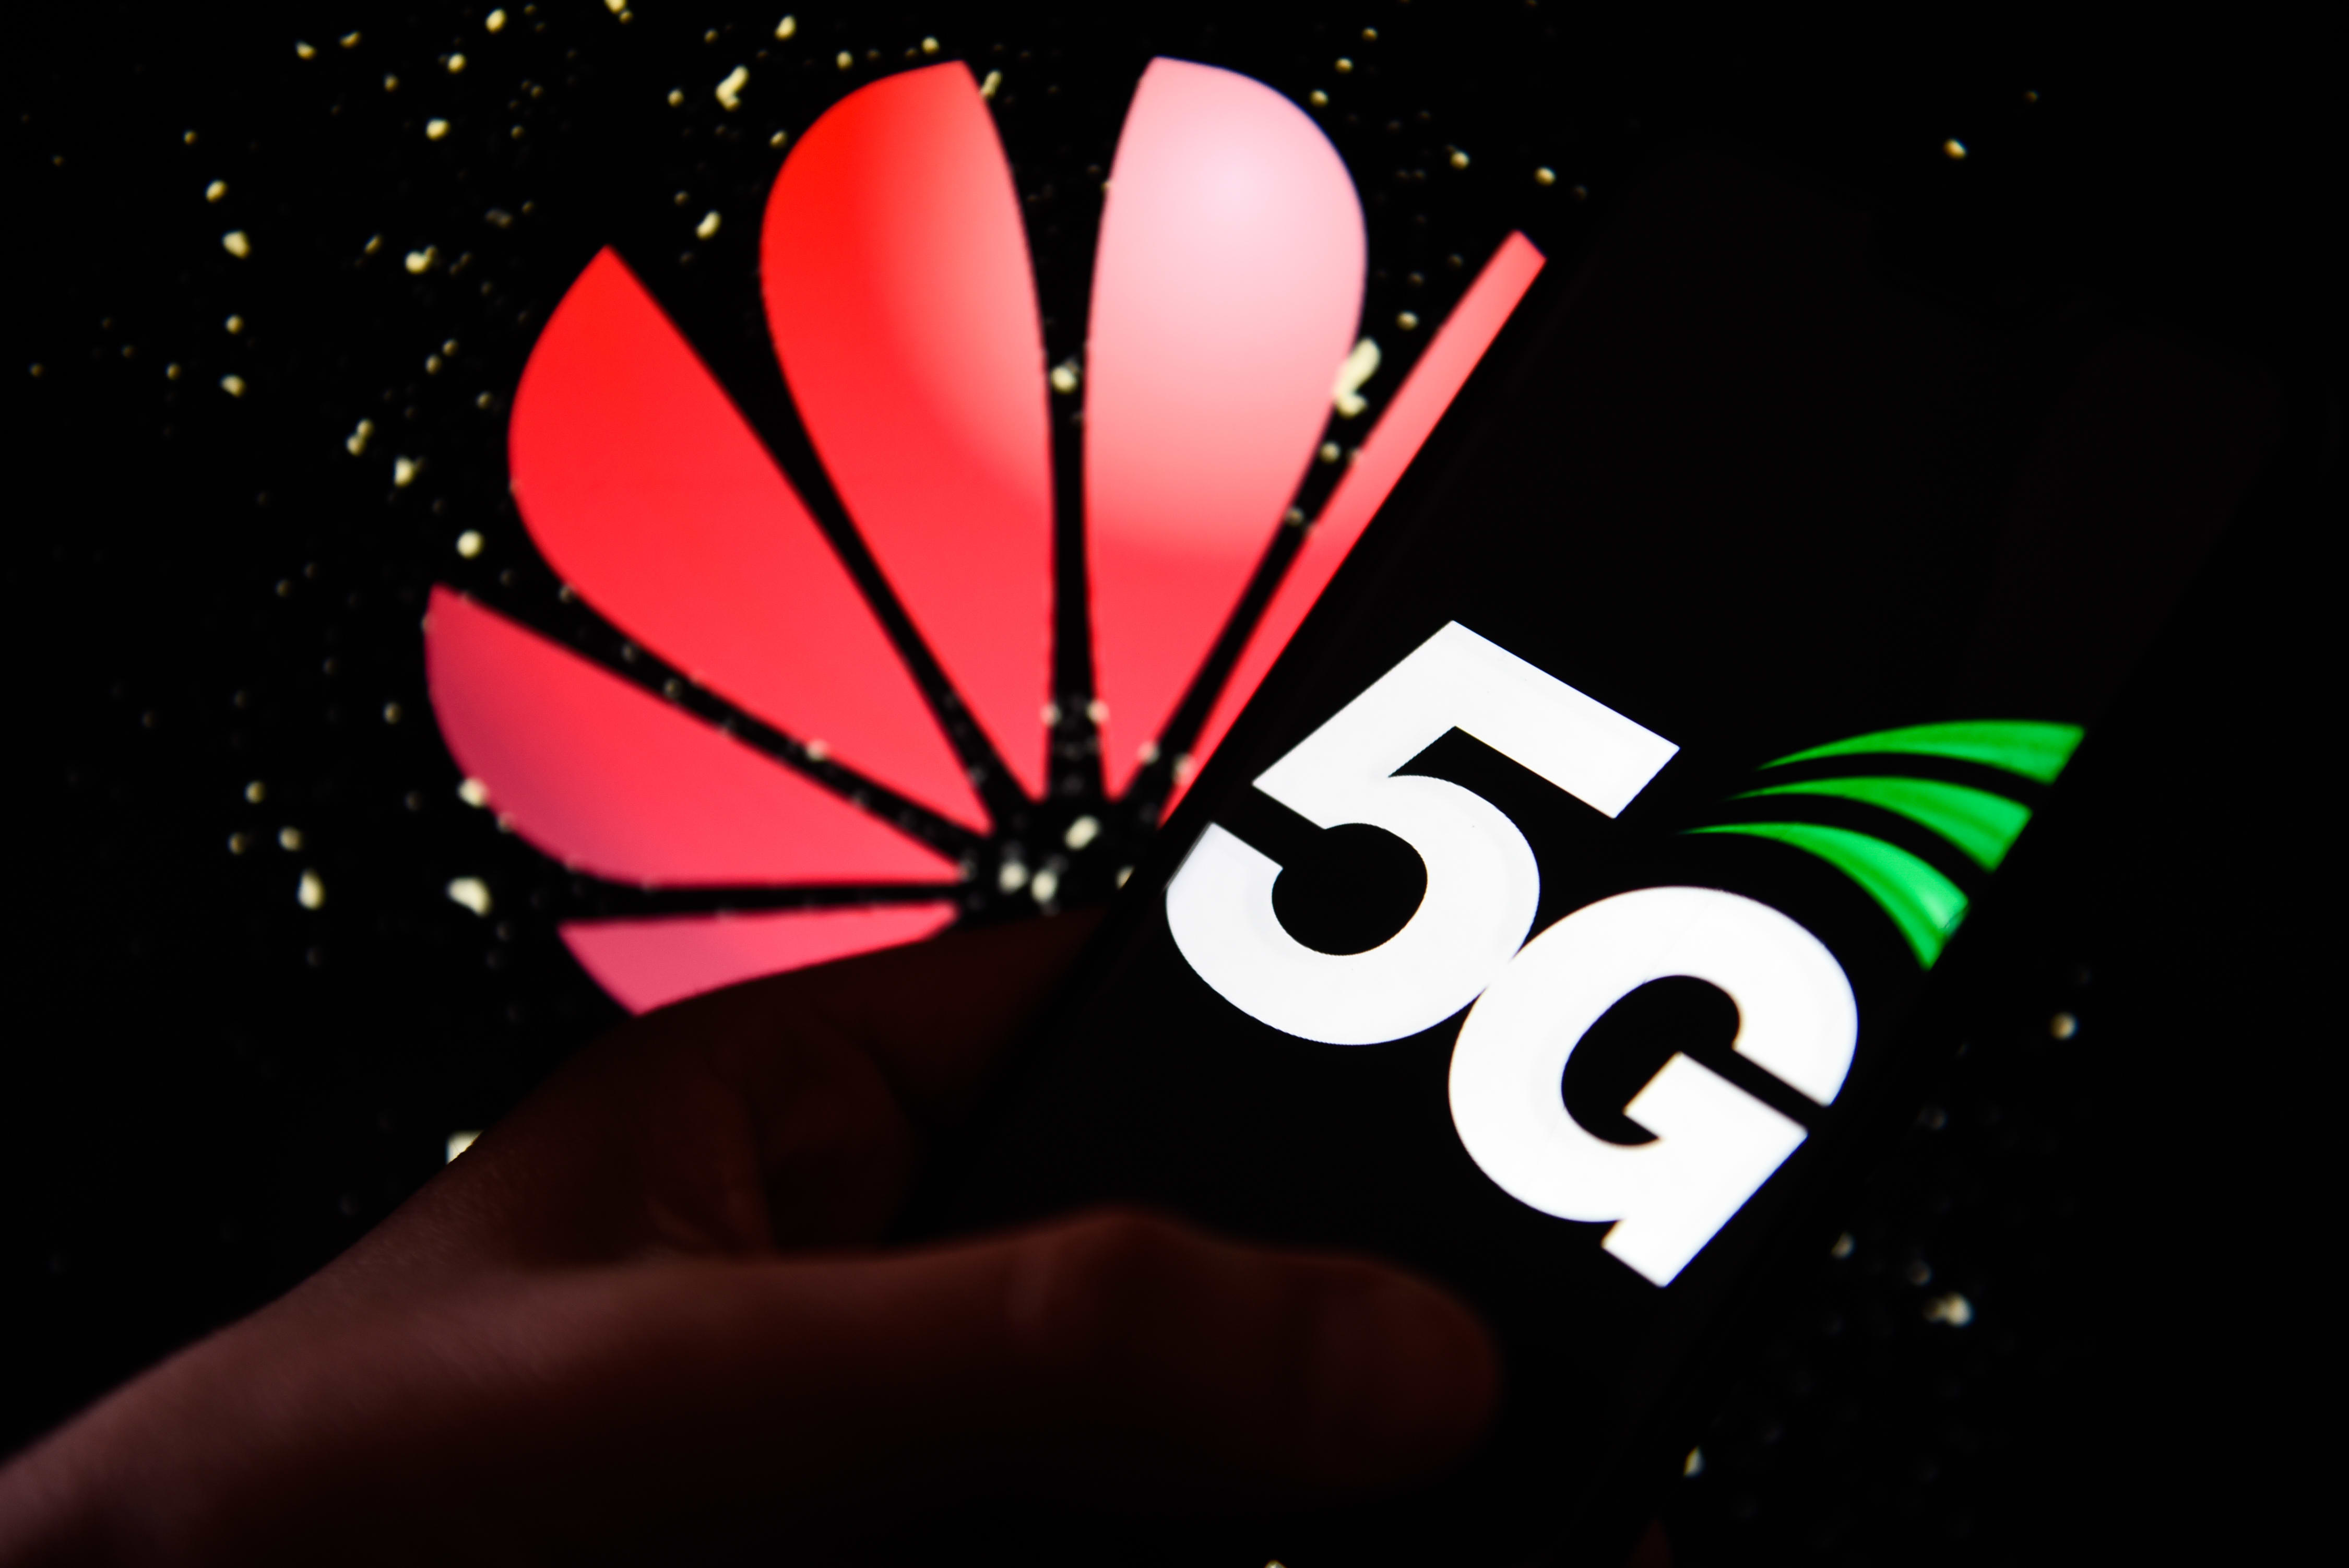 5G logo is seen on an android mobile phone with Huawei logo on the background.